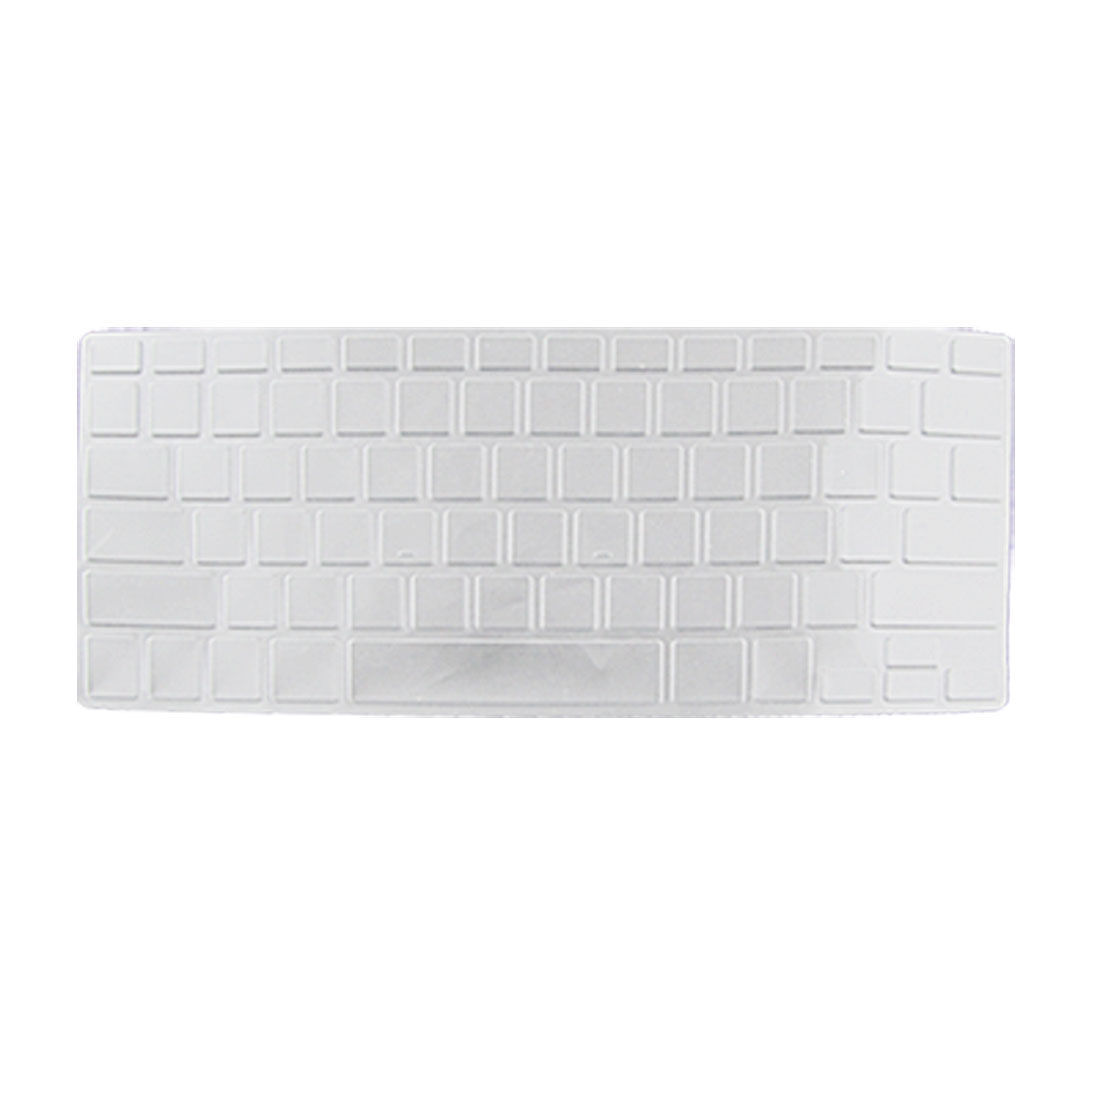 Clear Flexible TPU Keyboard Protector Cover for Apple Macbook Pro 13.3""